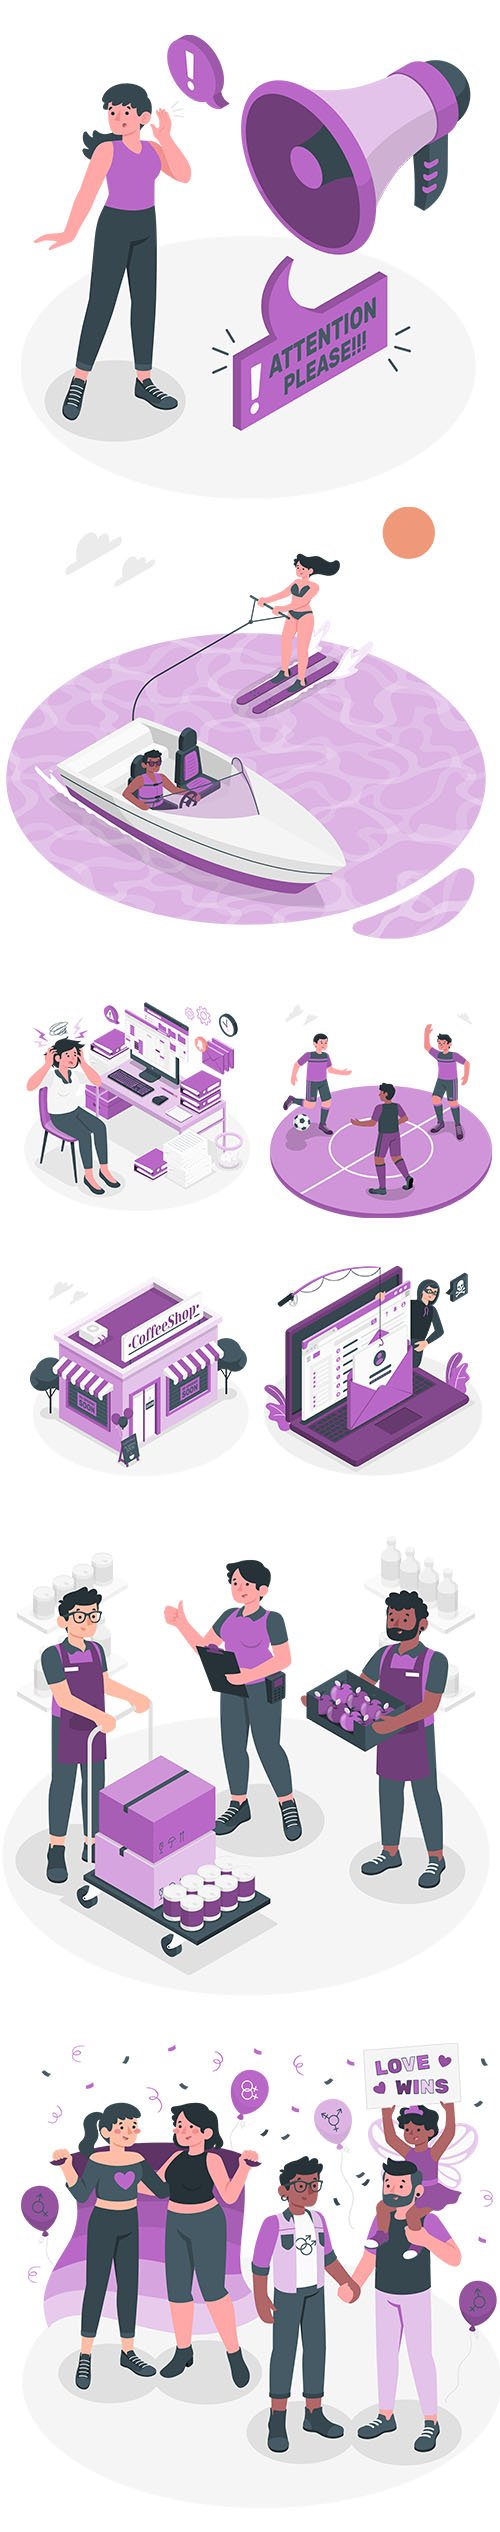 People Live Situations Set Purple Vector Collection Vol 4